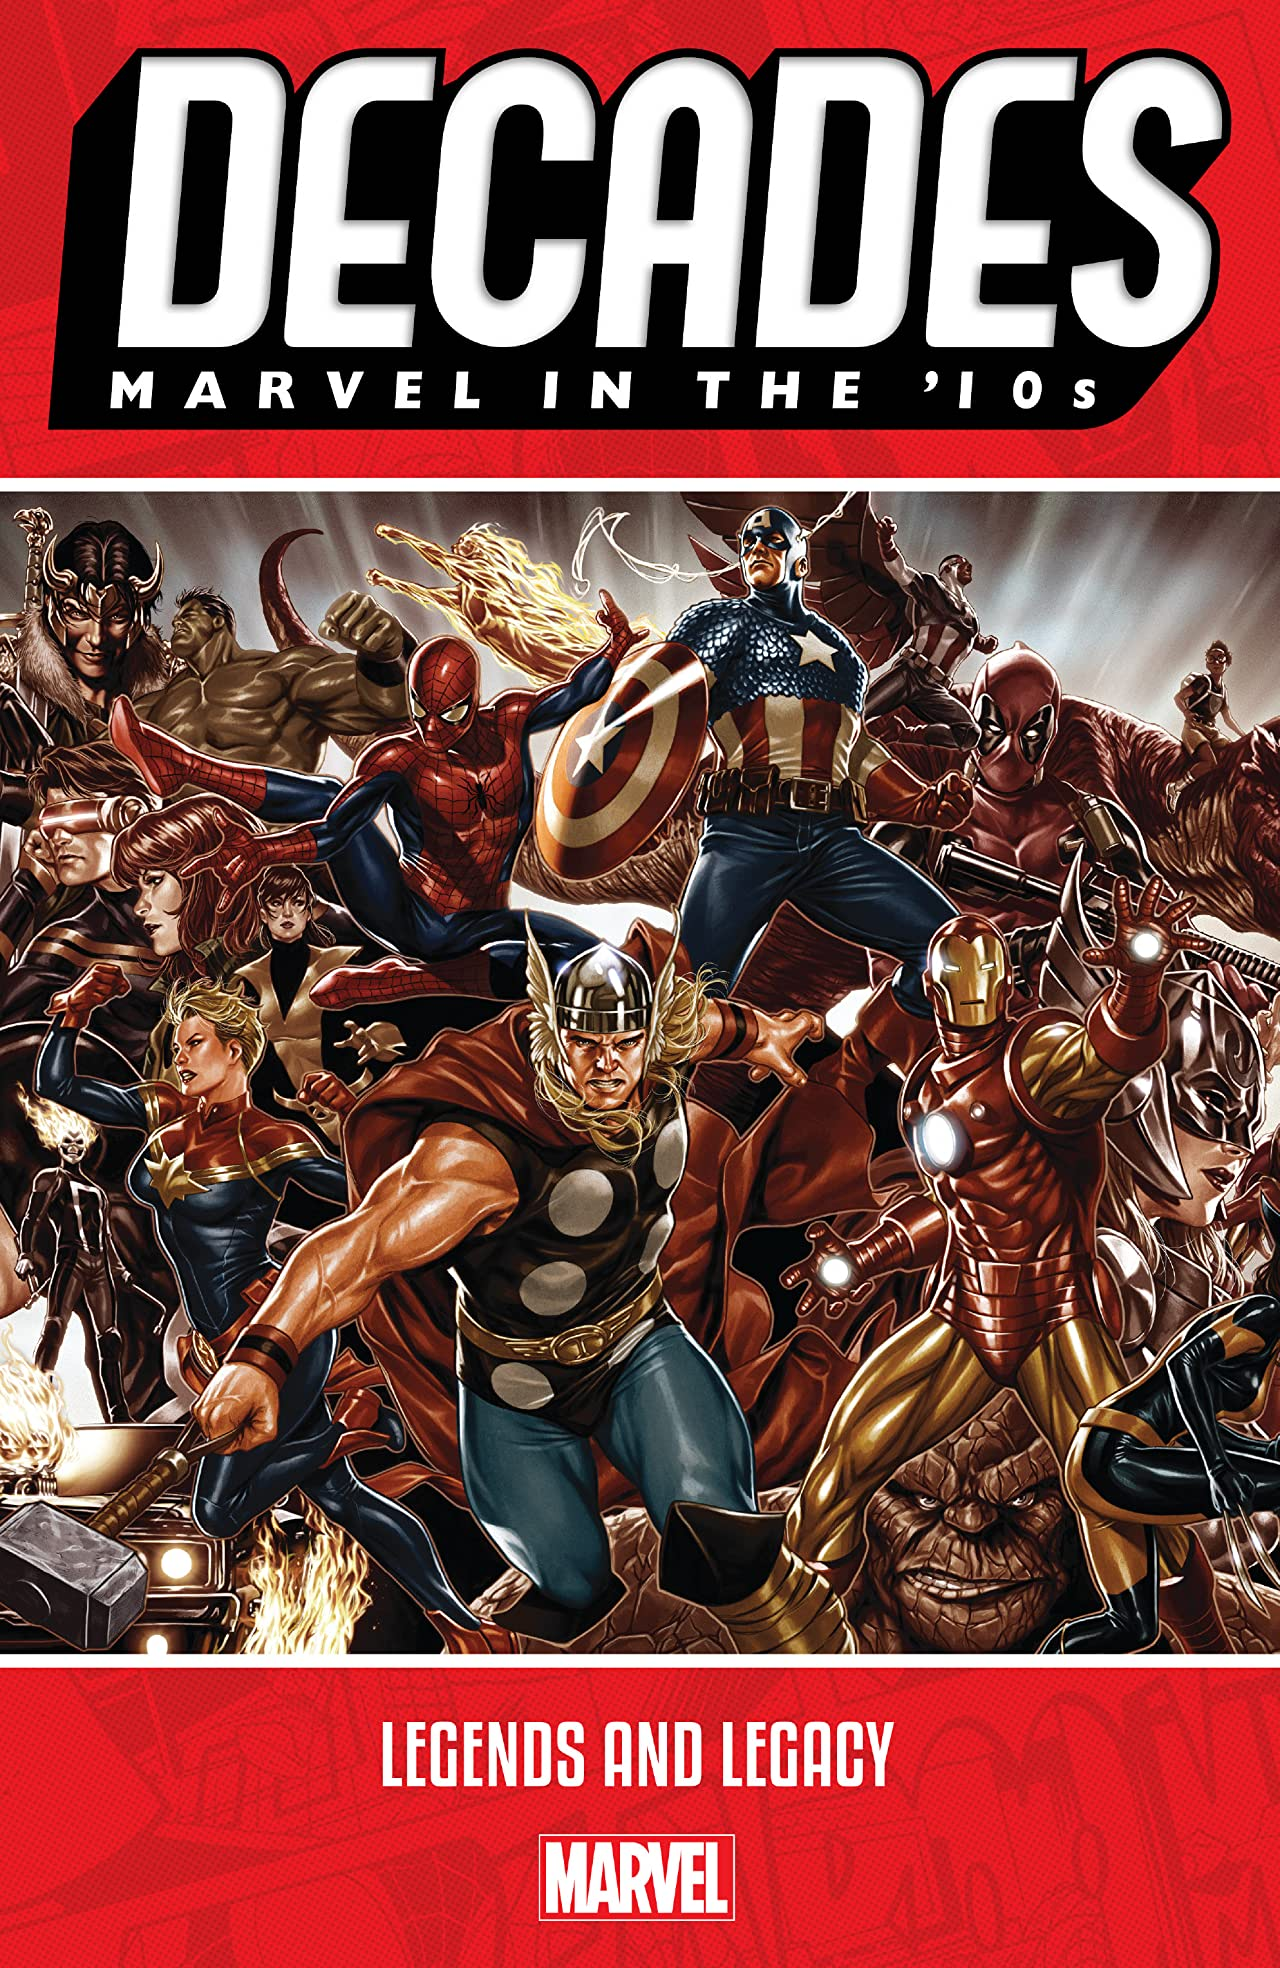 Decades: Marvel In The '10s - Legends And Legacy